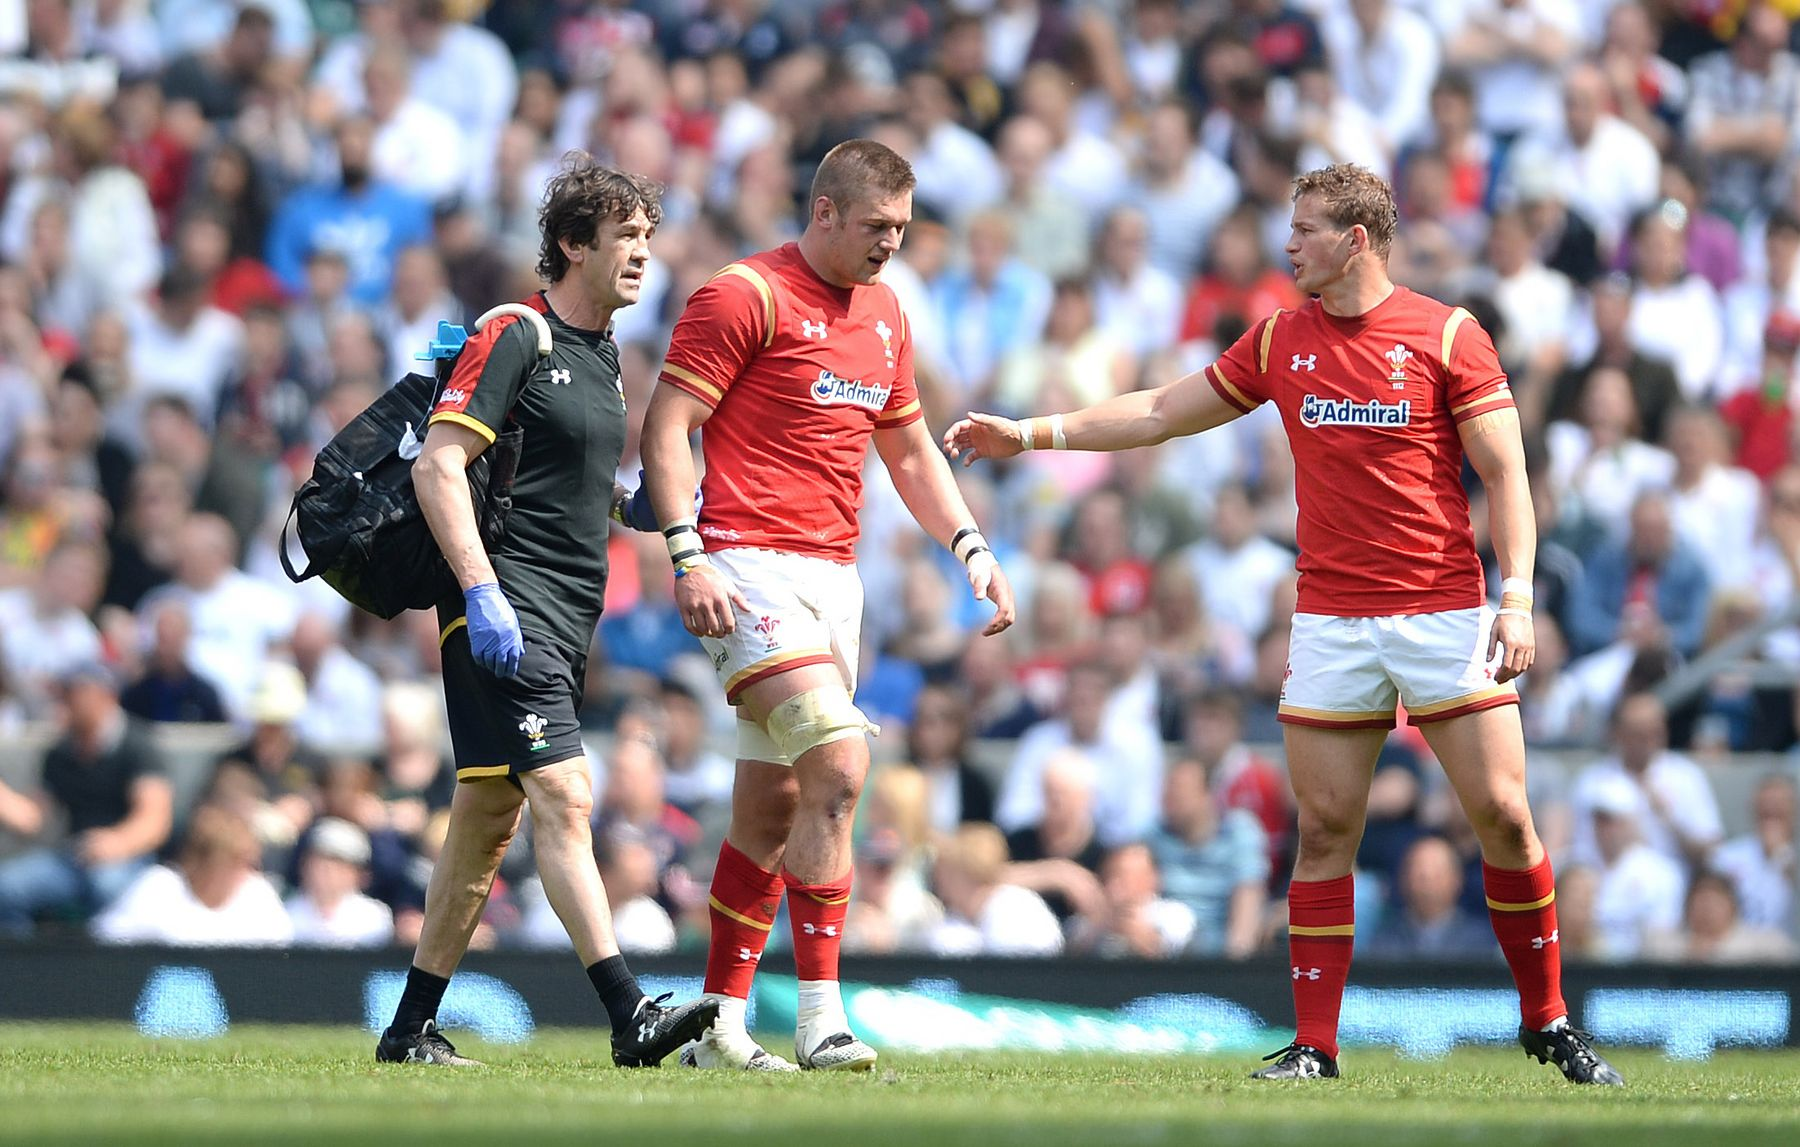 Lydiate and King on the mend